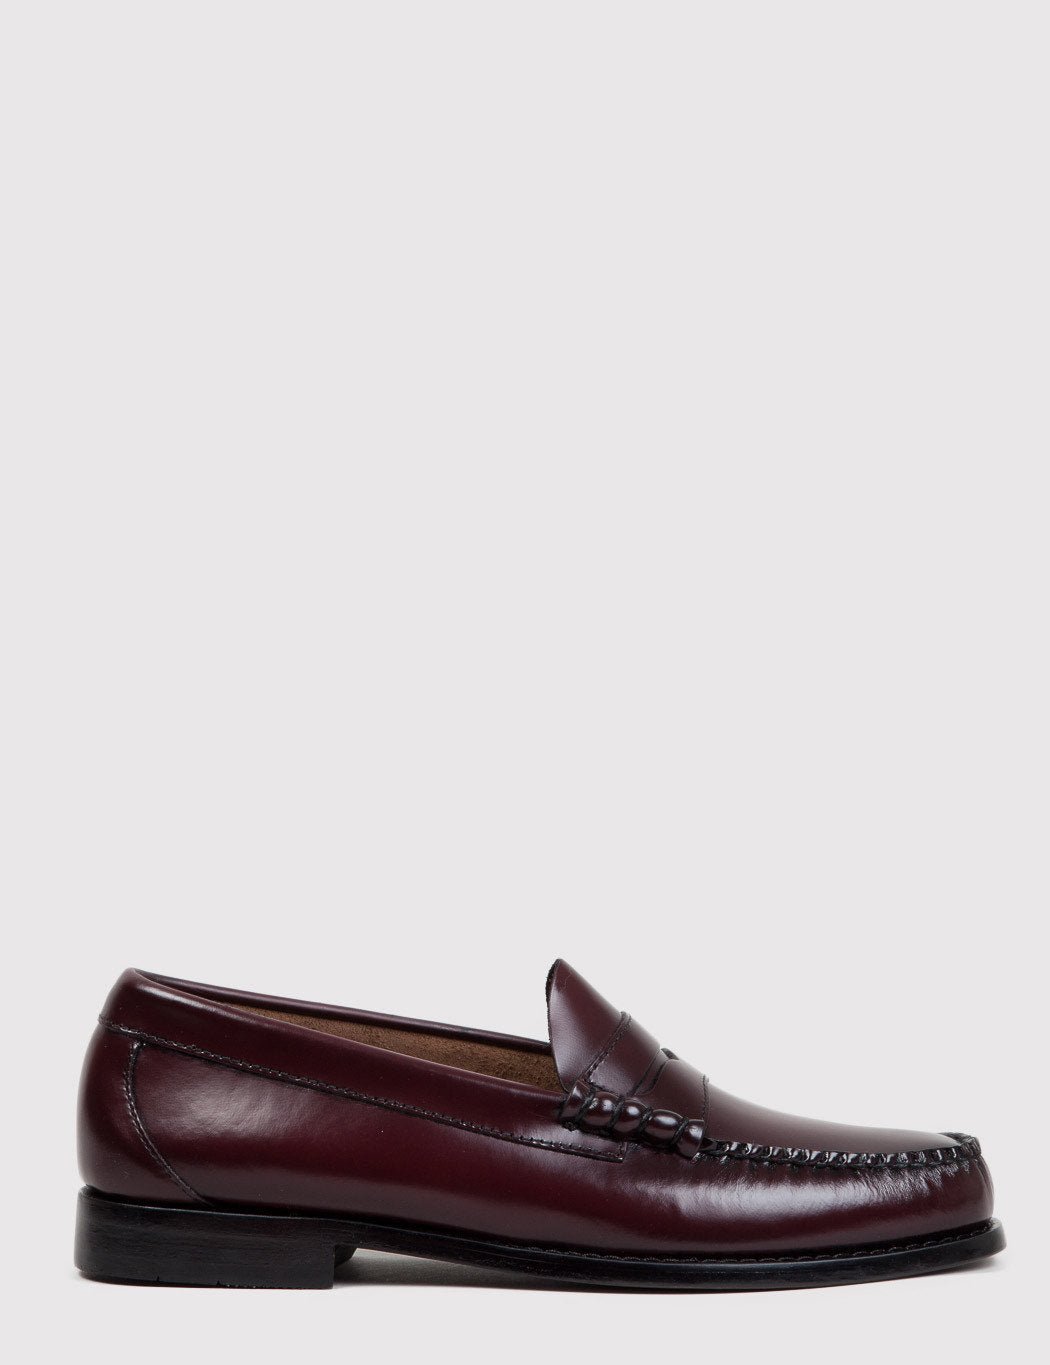 Bass Weejun Larson Penny Loafers - Wein